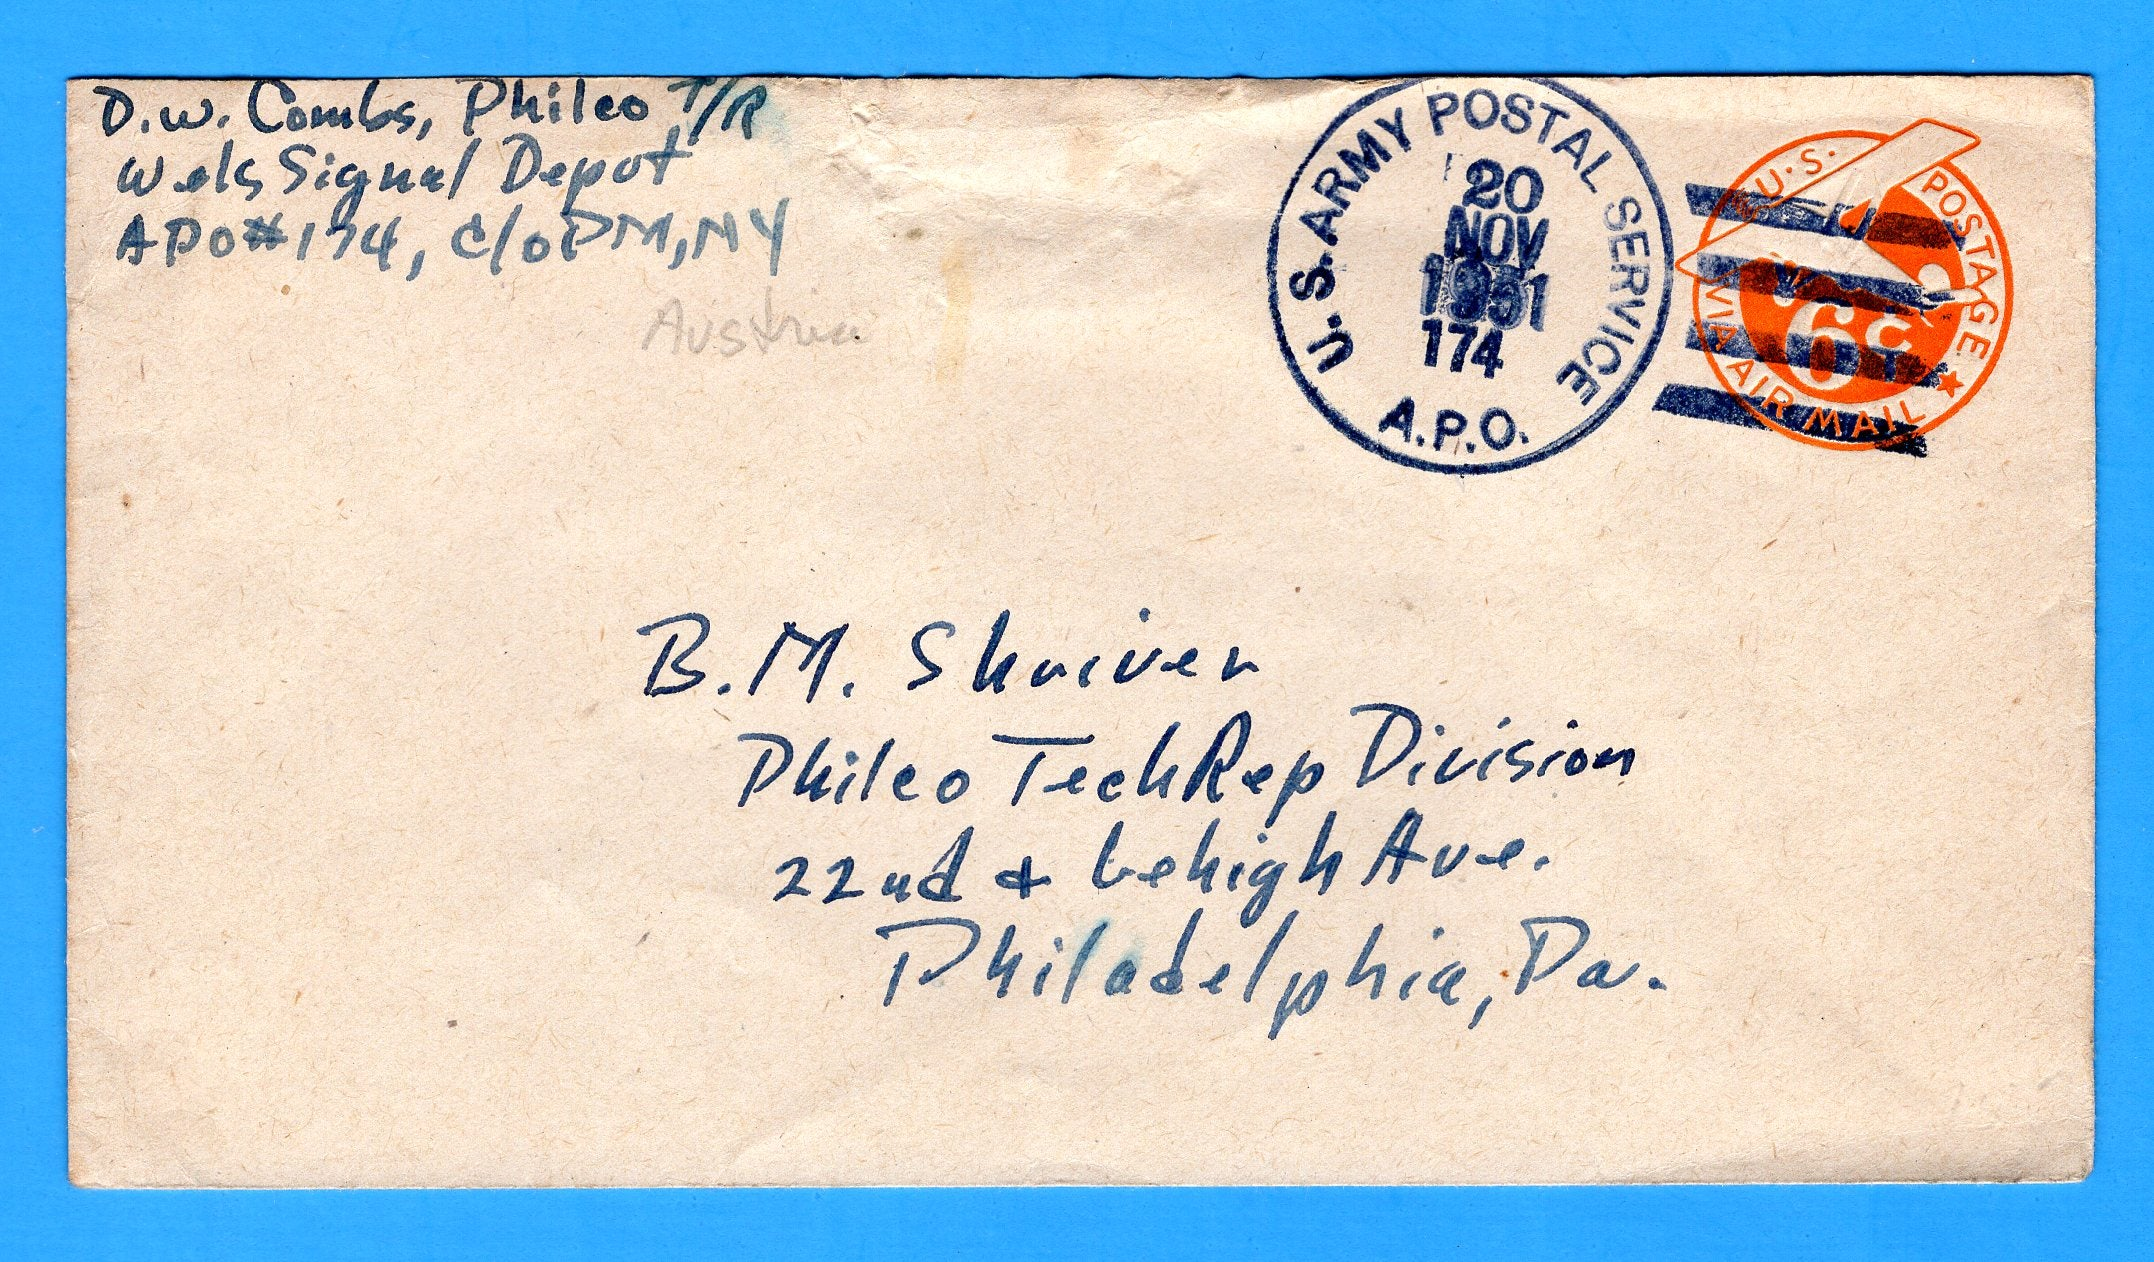 Soldier's Mail APO 174 Austria November 20, 1951